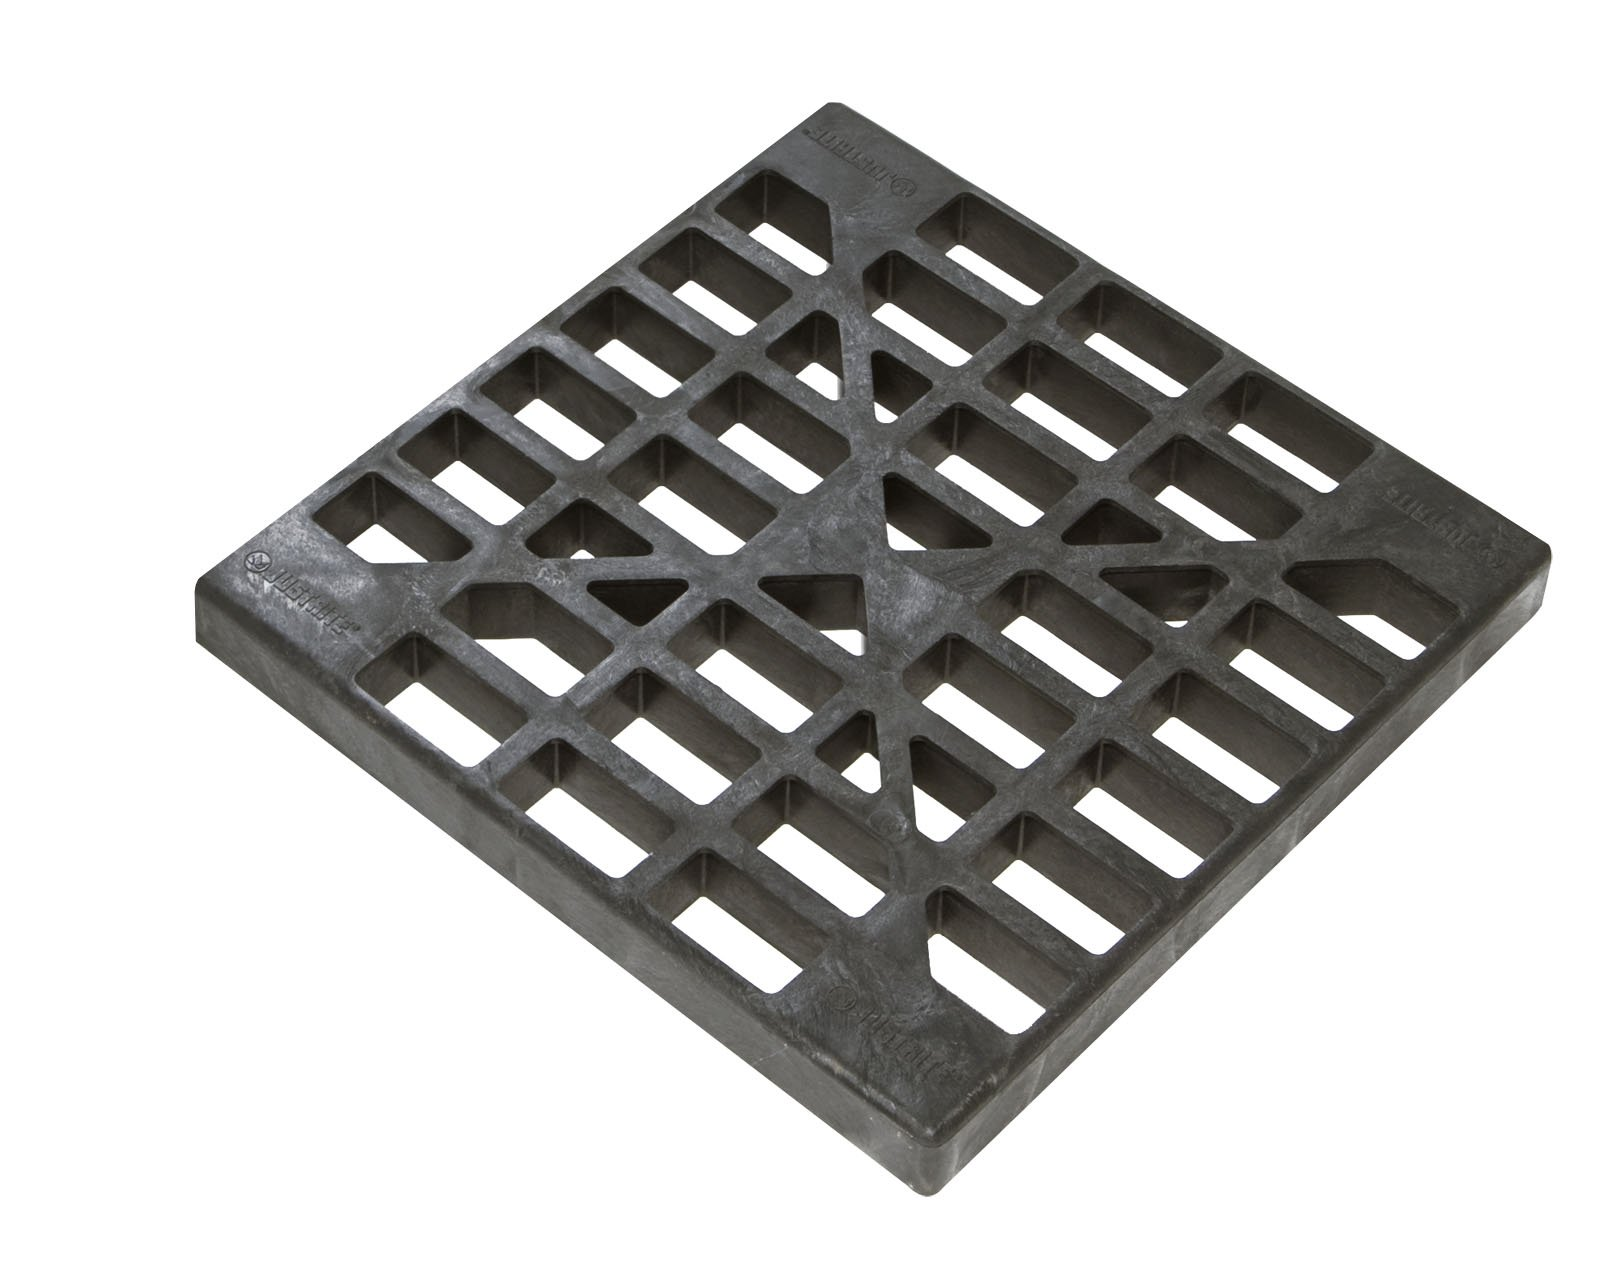 Justrite 28258 Polyethylene Double Rib Replacement 2 and 4 Drum Grate, 48'' Length x 24'' Width x 2-1/2'' Height, Black